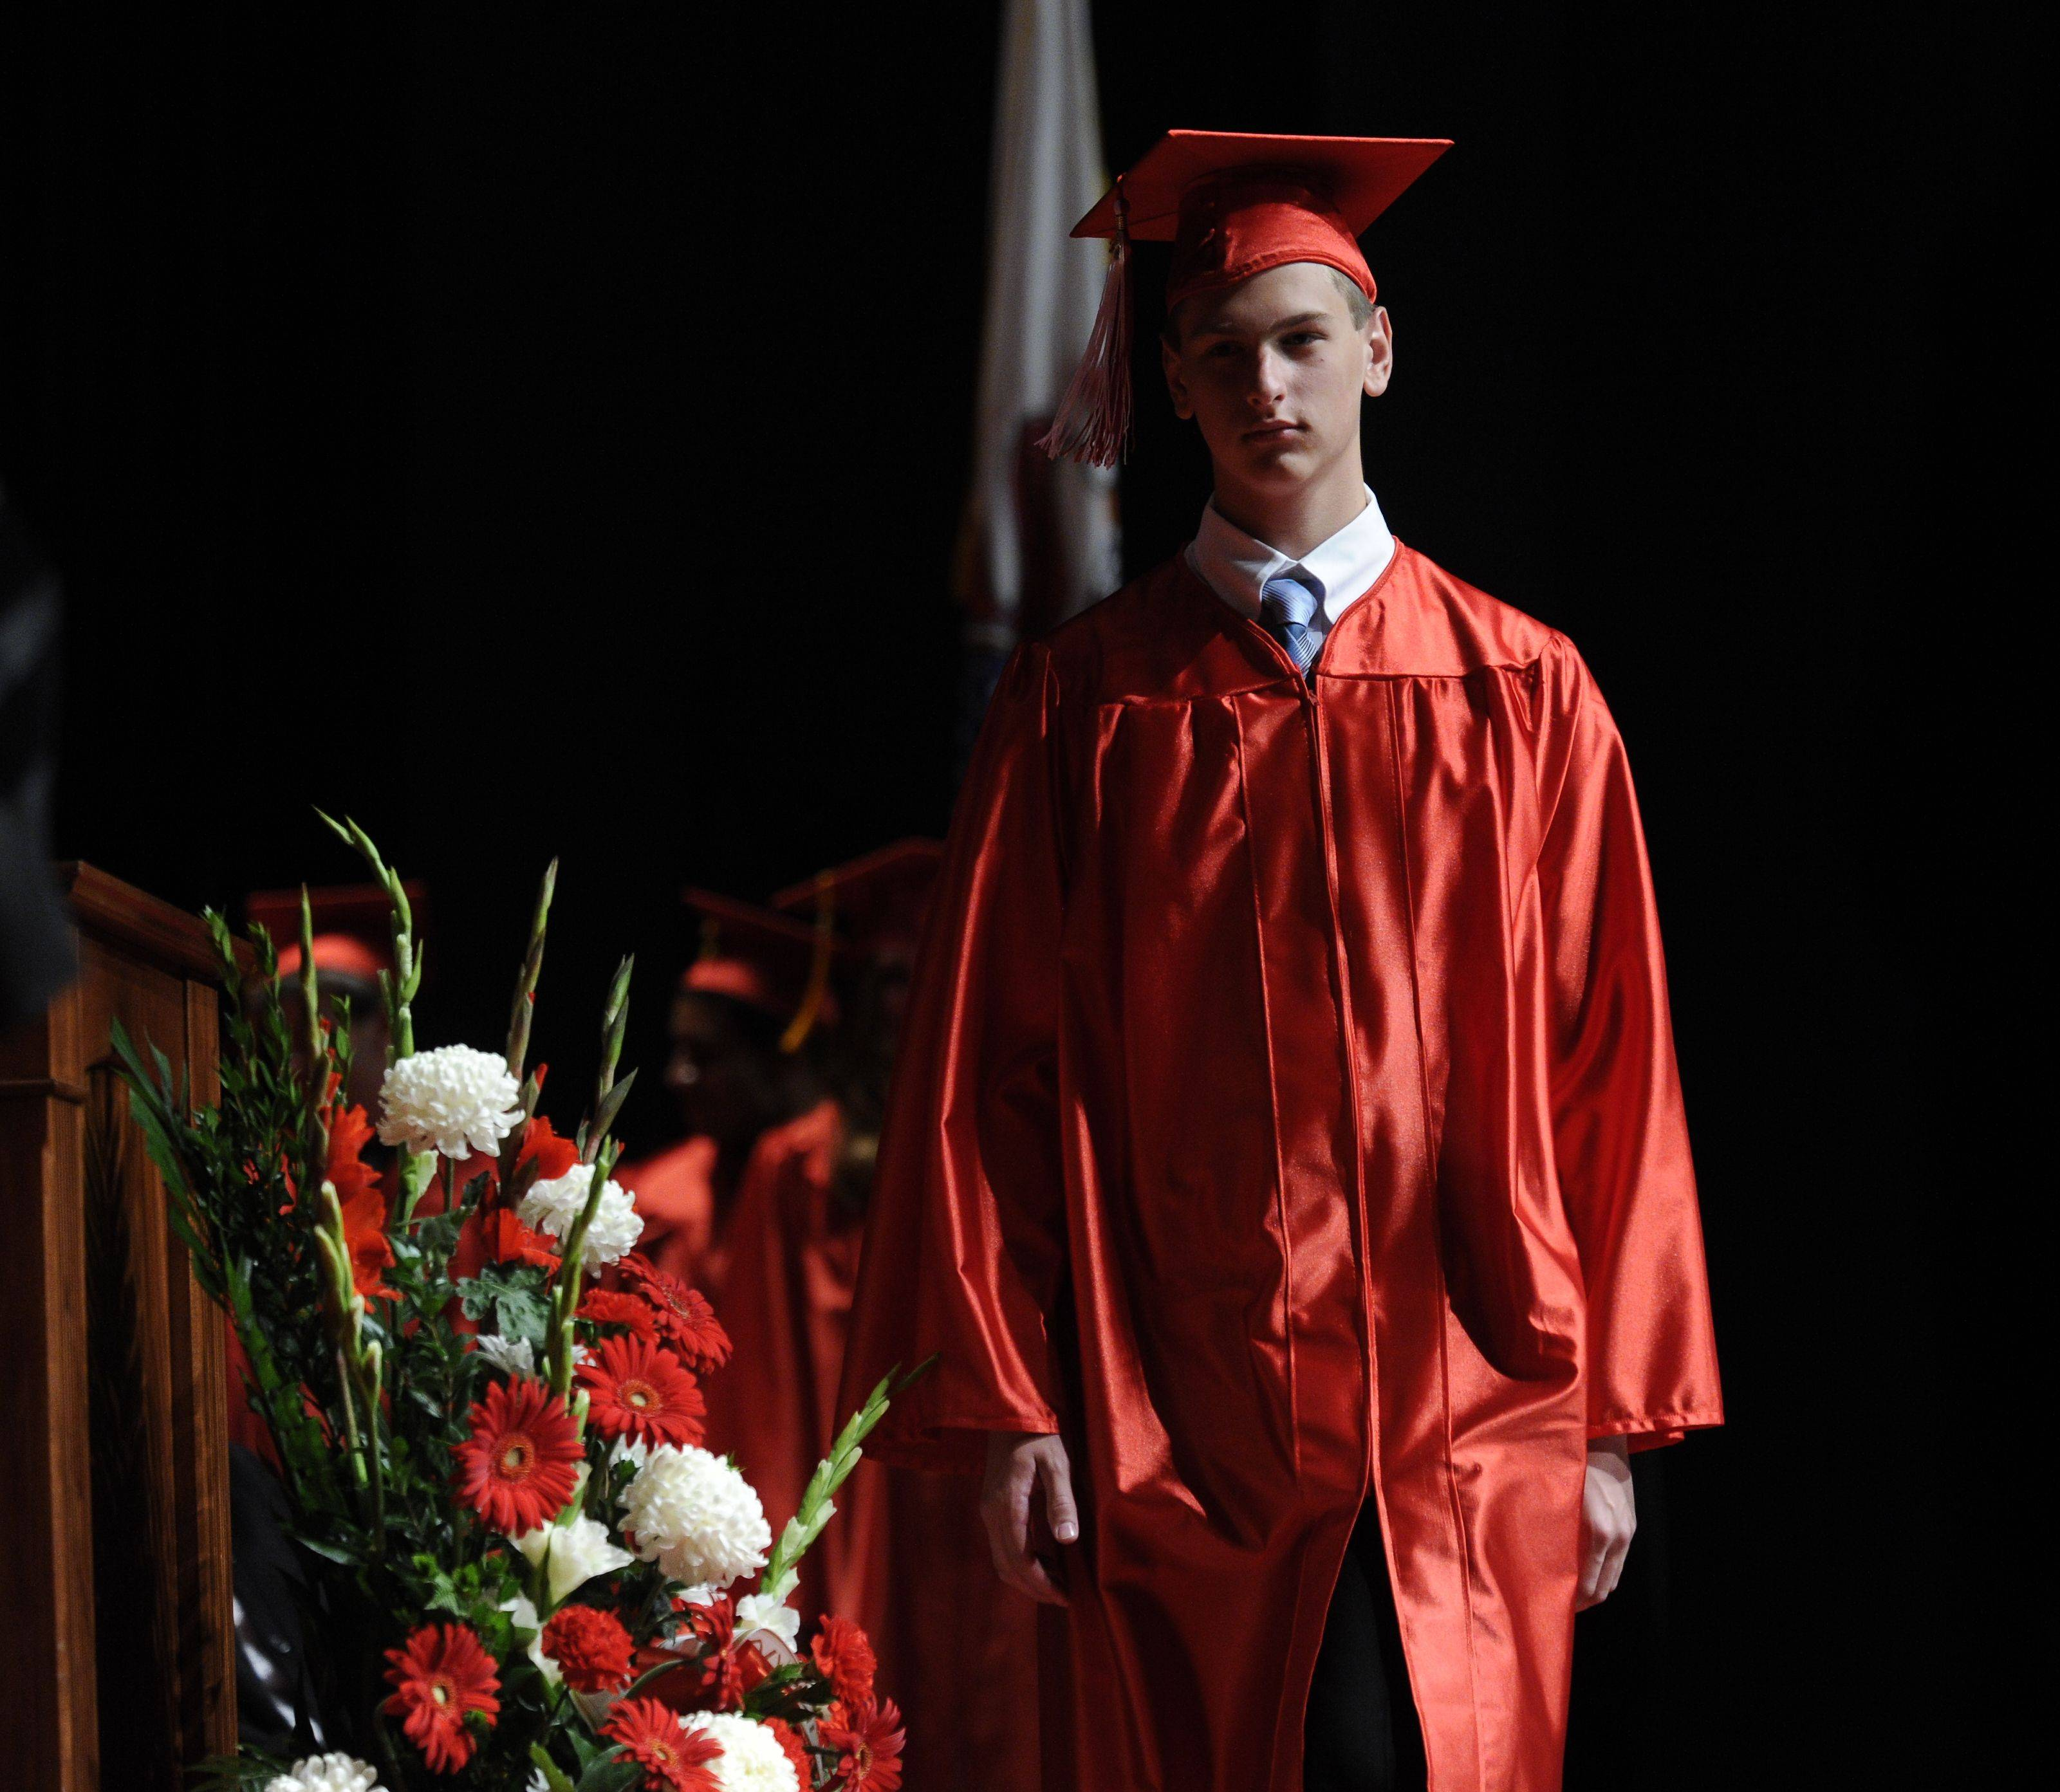 Images from the Maine South High School graduation on Monday, June 6th.